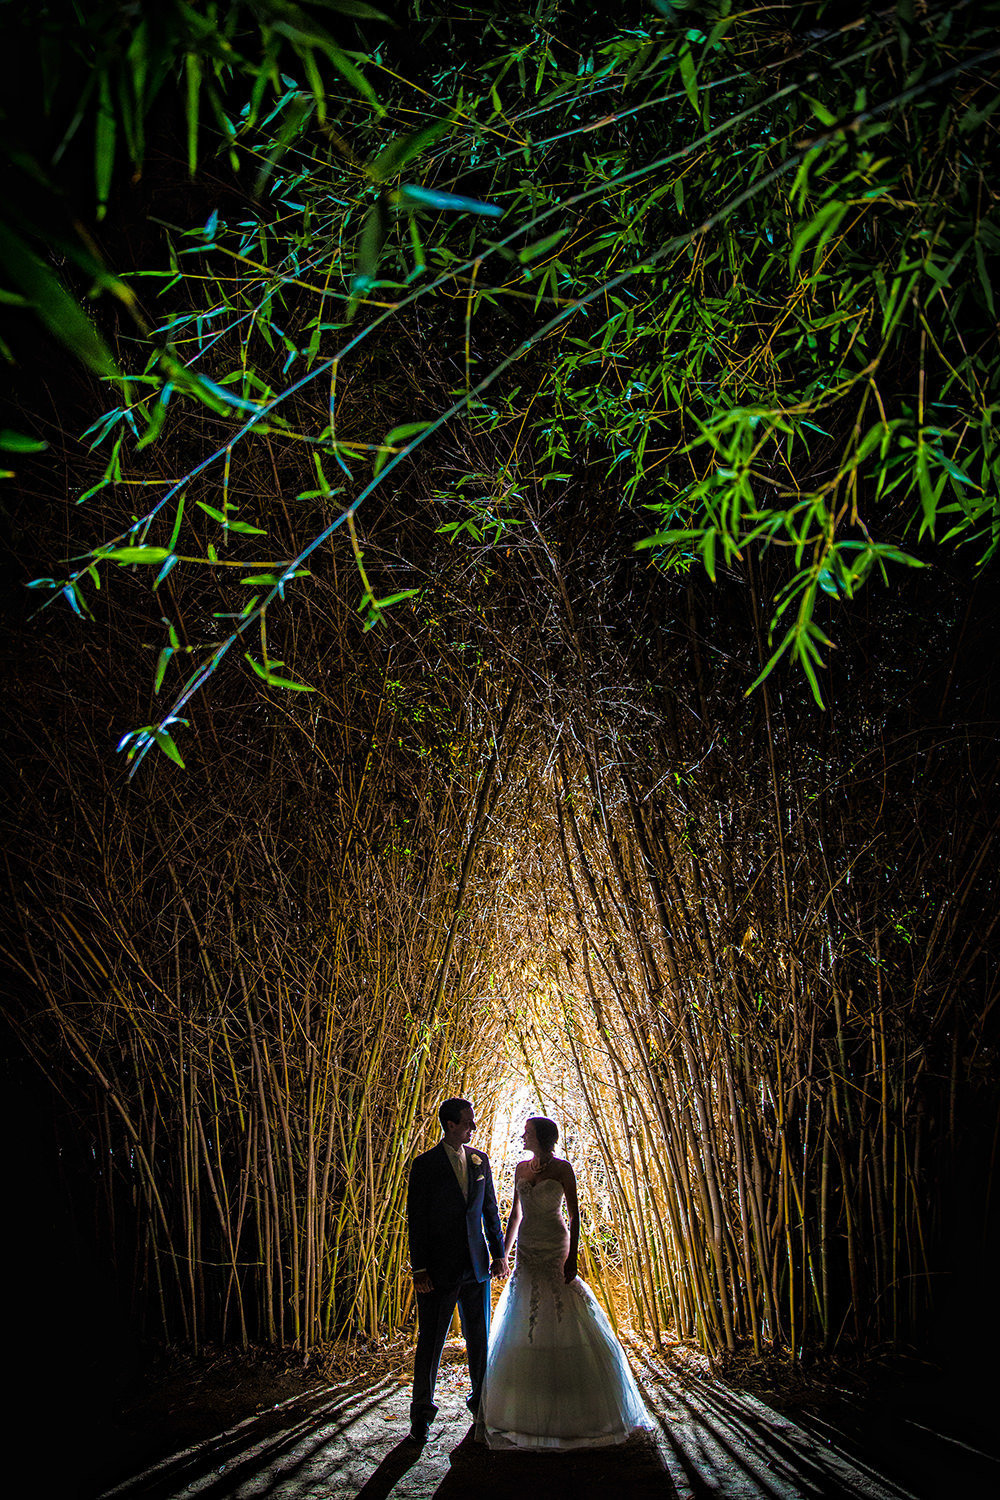 night image of couple in the bamboo field